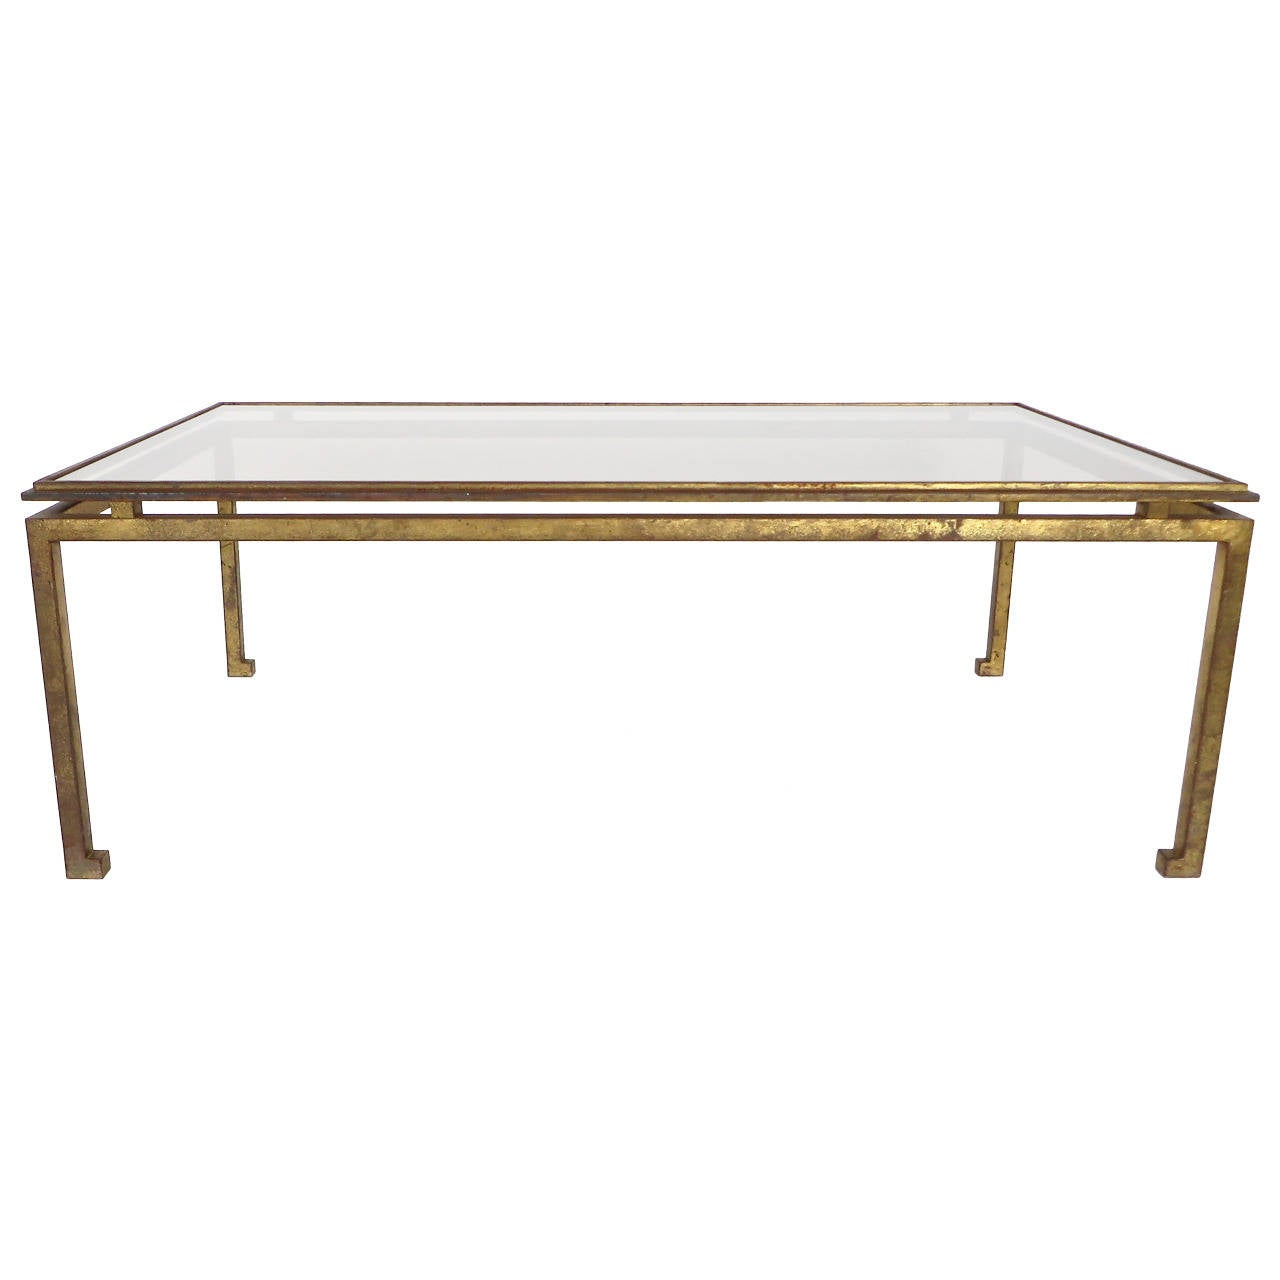 Maison Ramsay Superb Patina Gold Leaf Wrought Iron Rectangular Coffee Table a -> Gold Rectangle Table